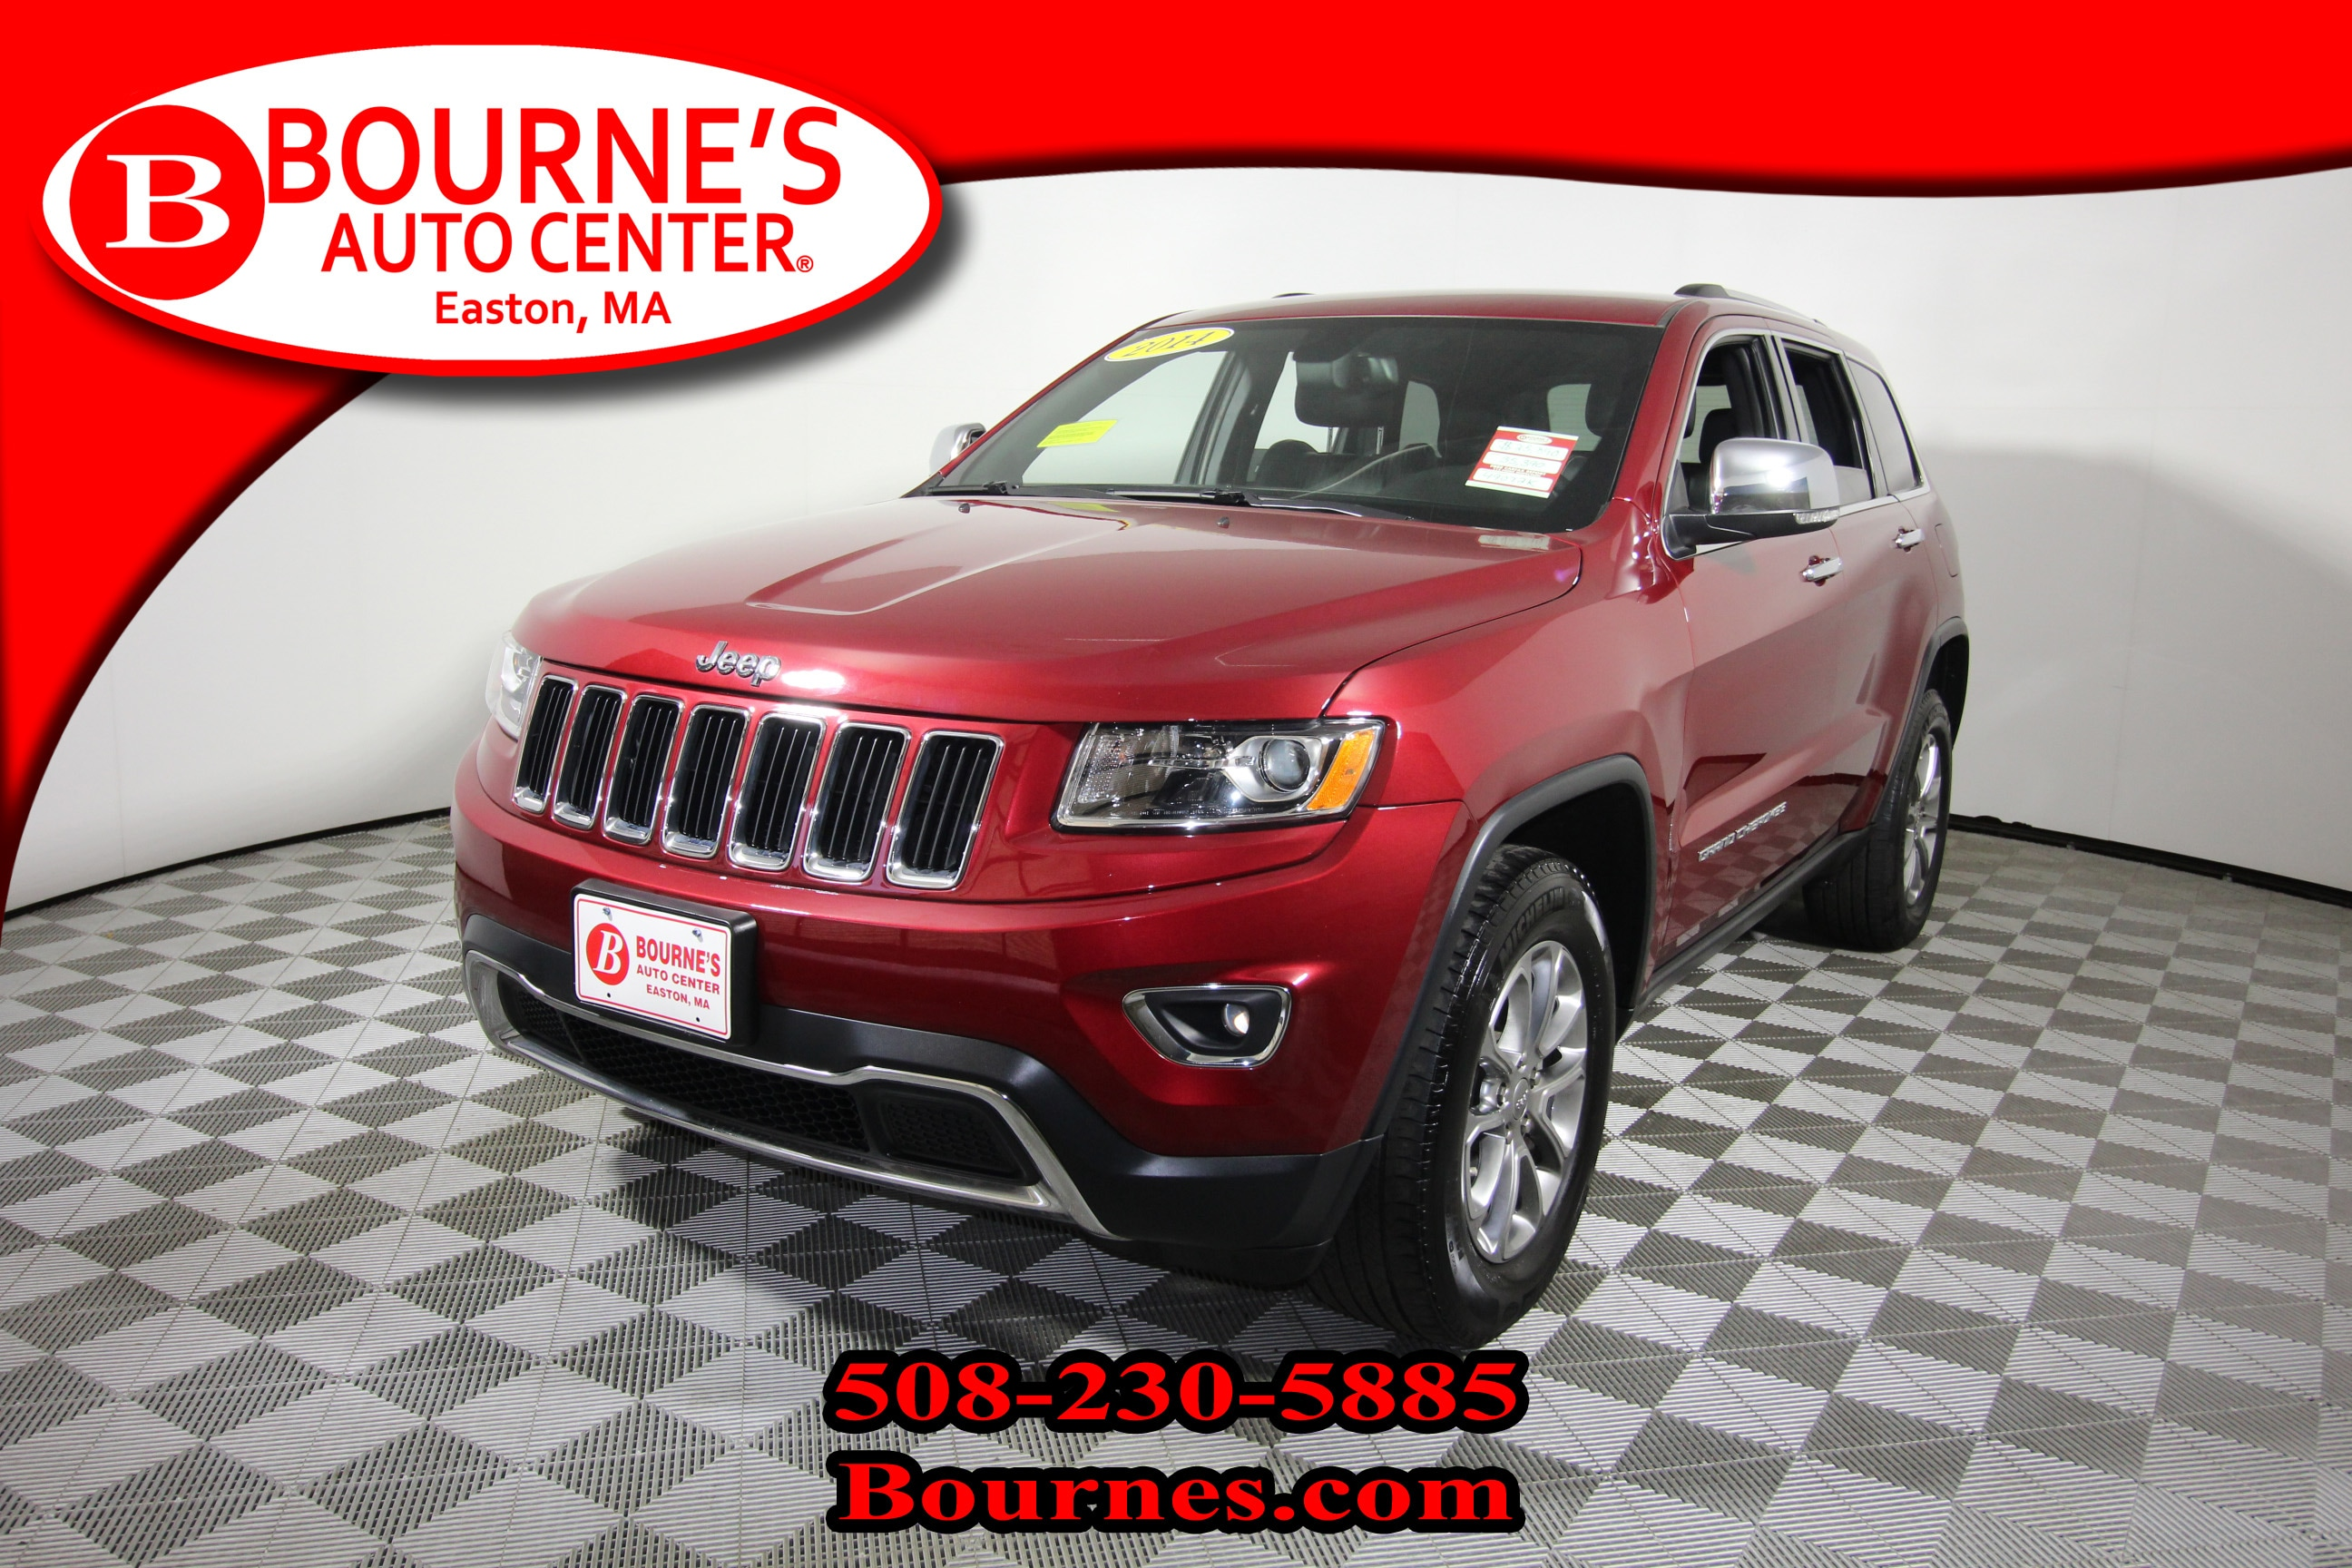 2014 Jeep Grand Cherokee Limited 4x4 w/ Navigation,Leather,Heated Front Sea SUV